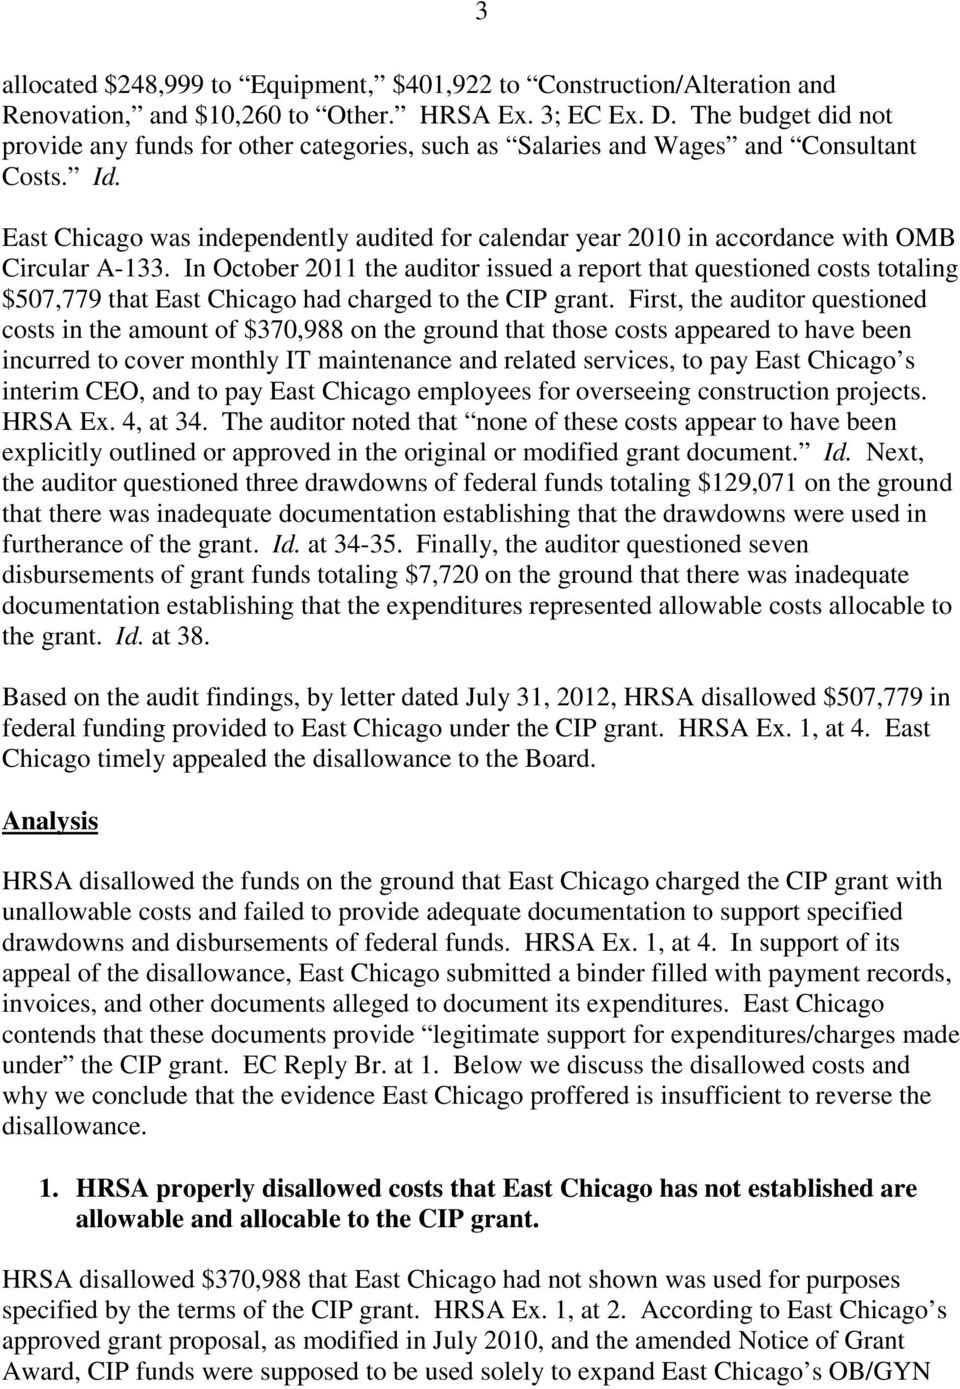 East Chicago was independently audited for calendar year 2010 in accordance with OMB Circular A-133.